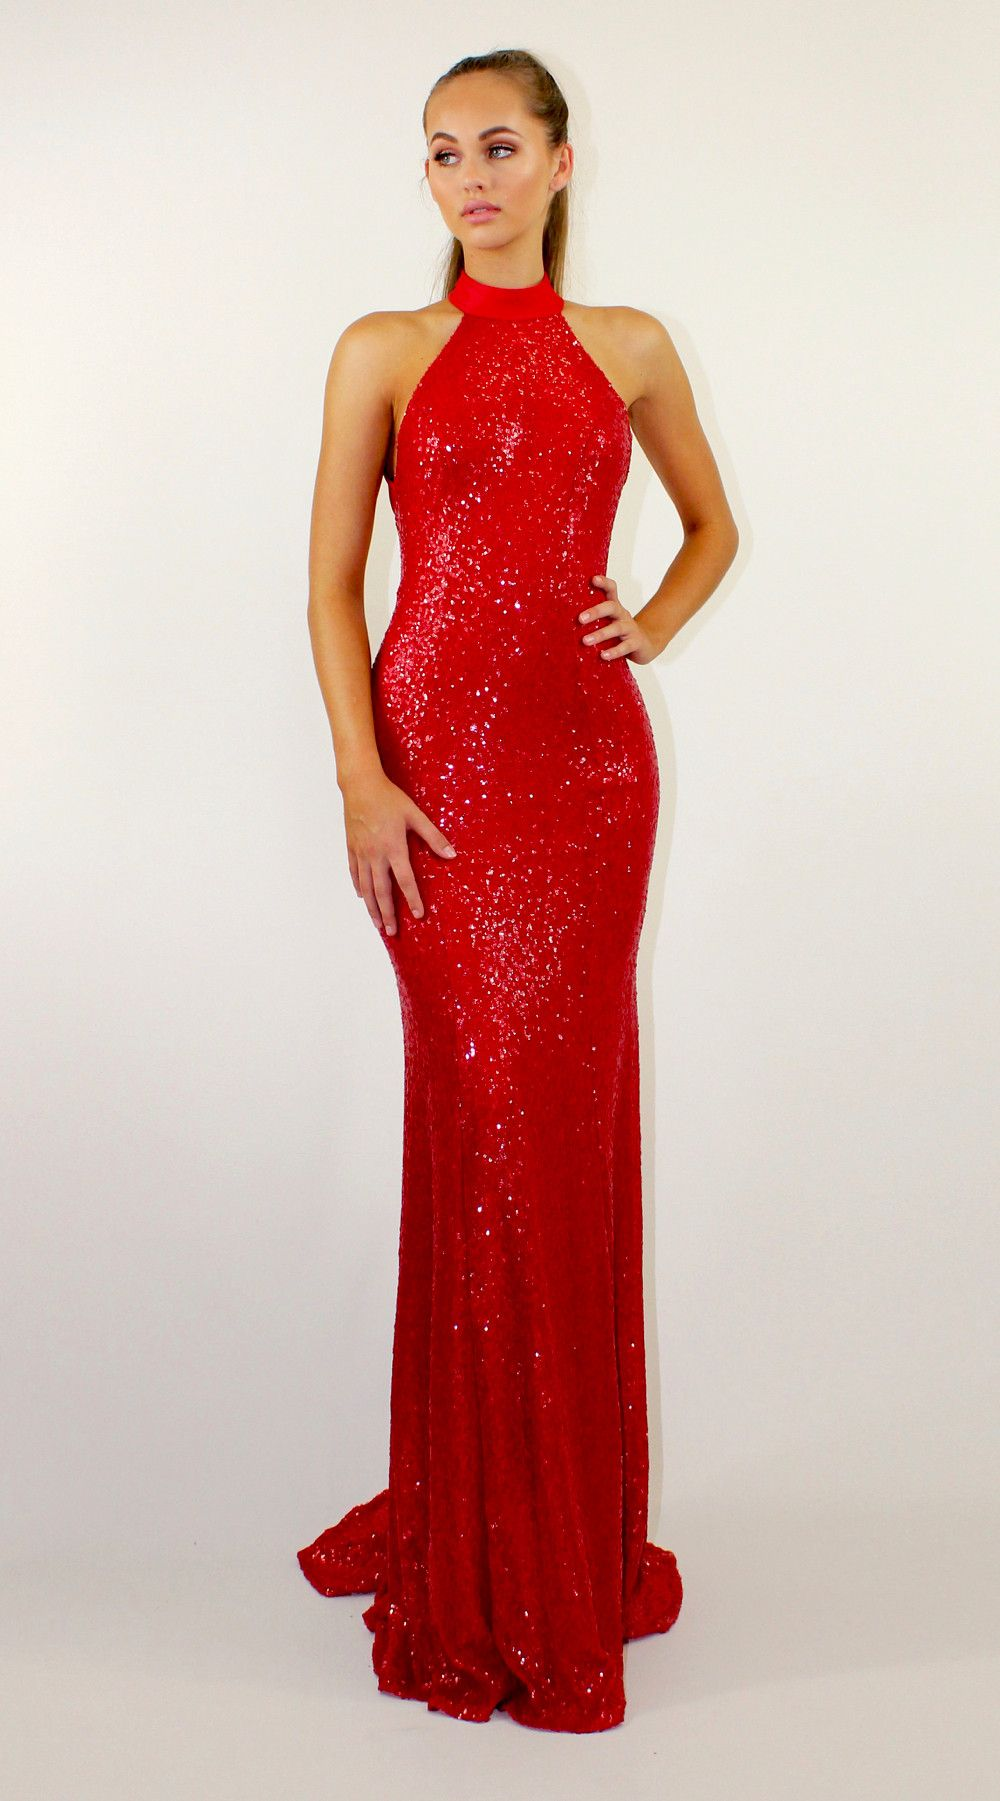 9924f260f39 STUDIO MINC Chloe in Red fitted fishtail and backless sequin formal dress